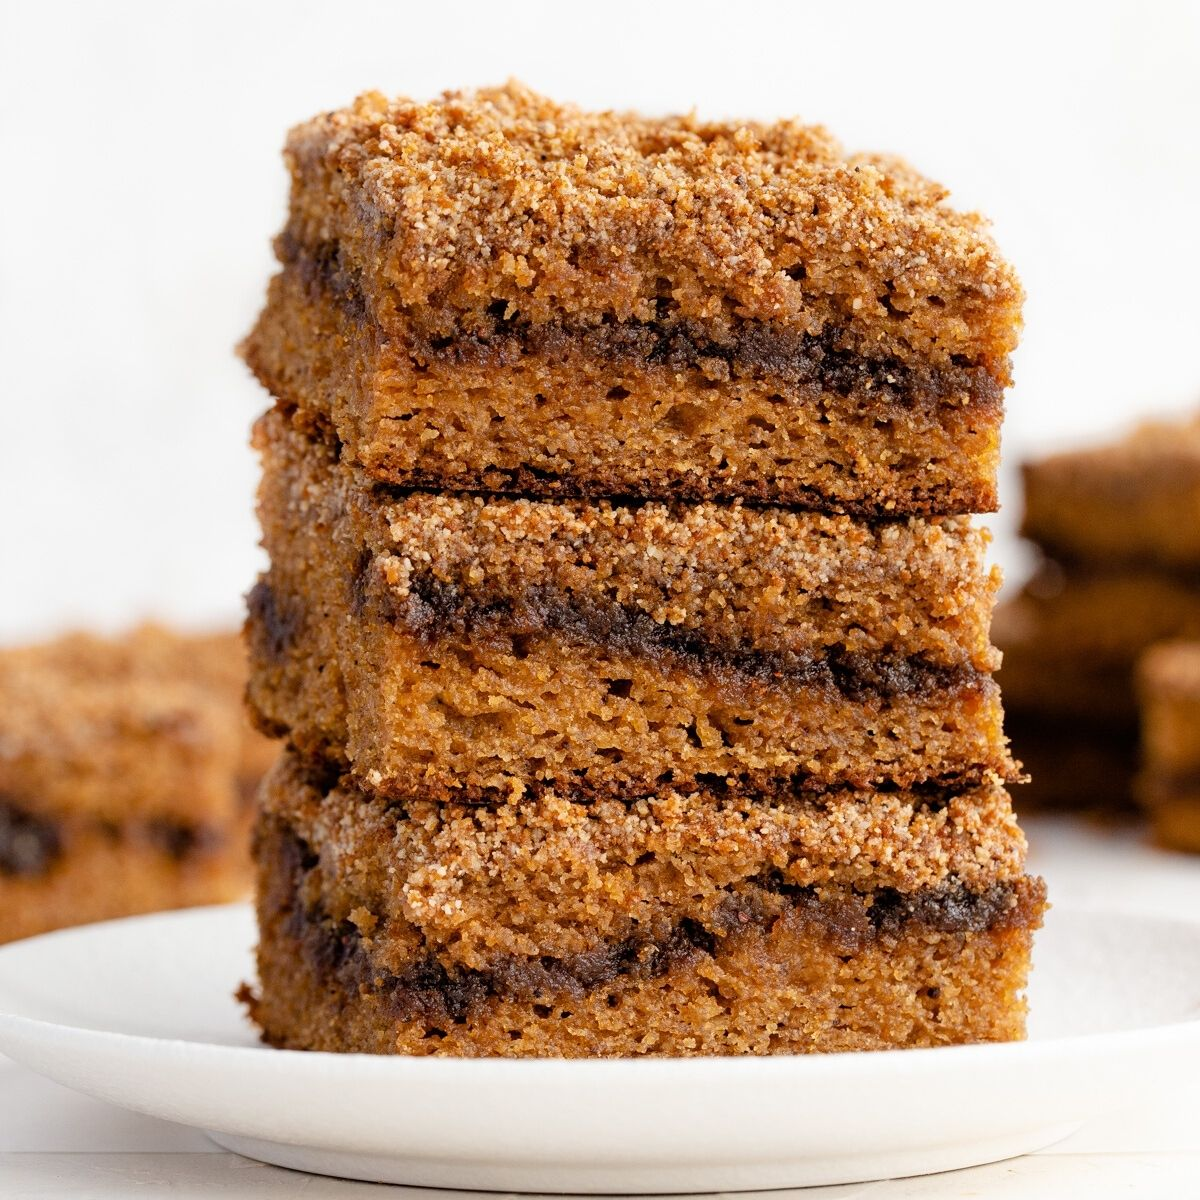 stack of healthy cinnamon swirl coffee cake with cinnamon sugar layer in the middle